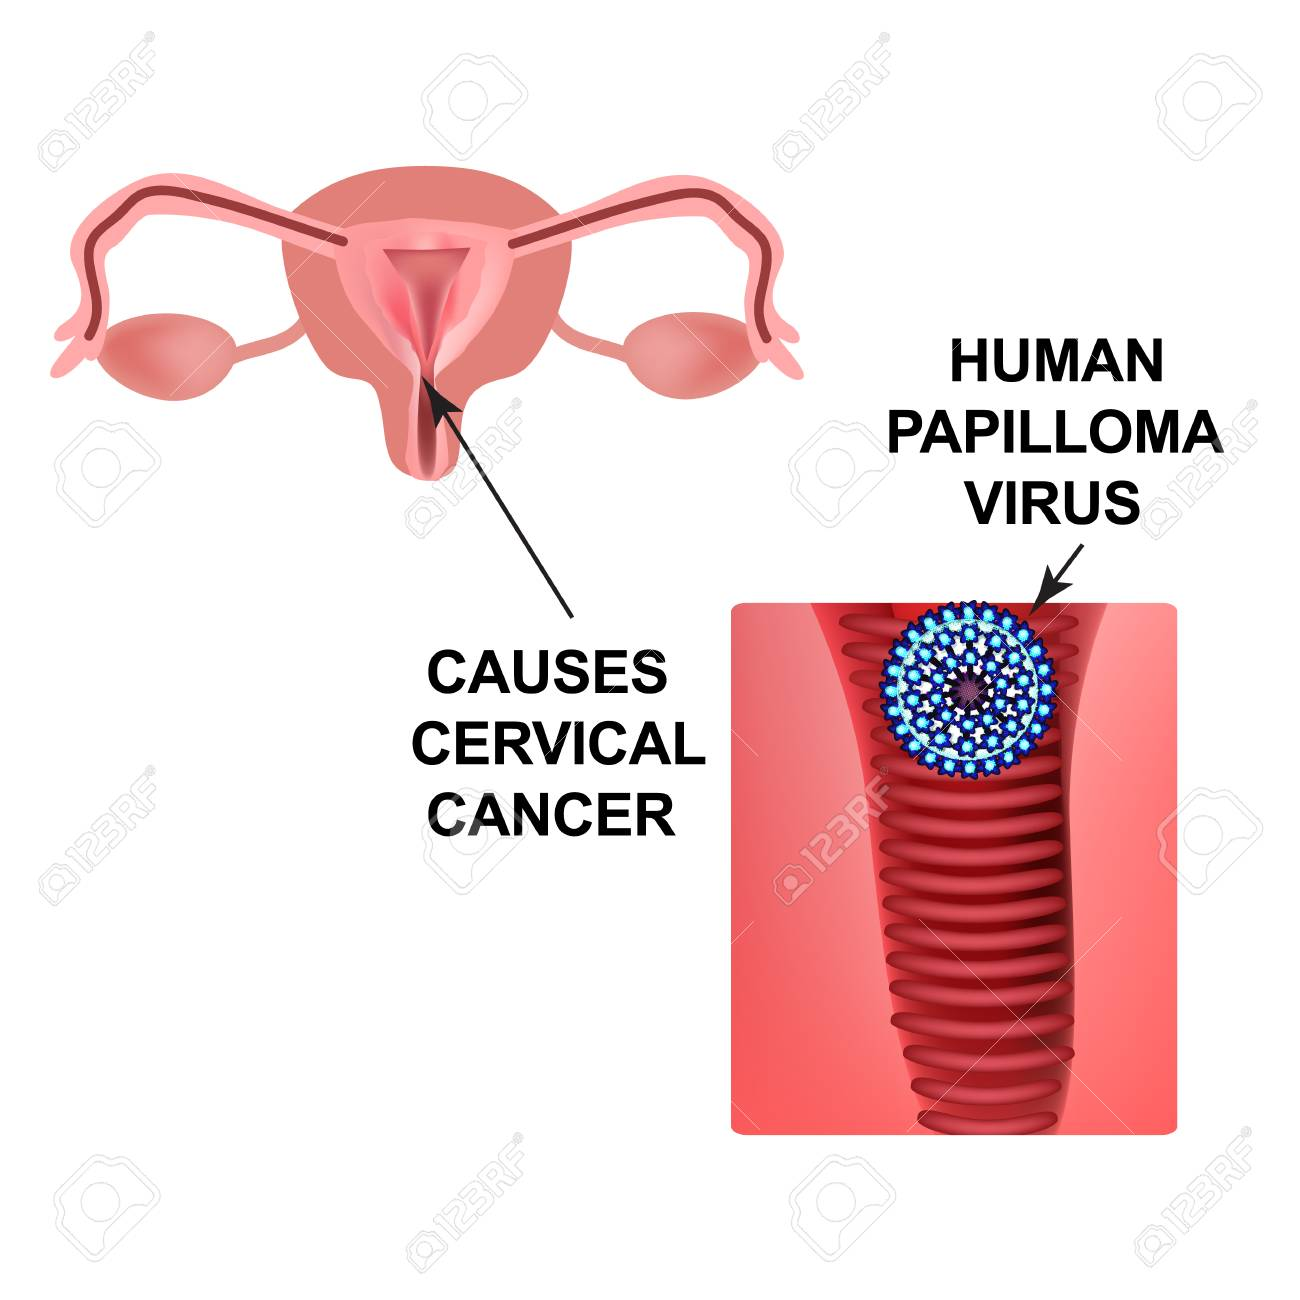 papilloma virus cancer